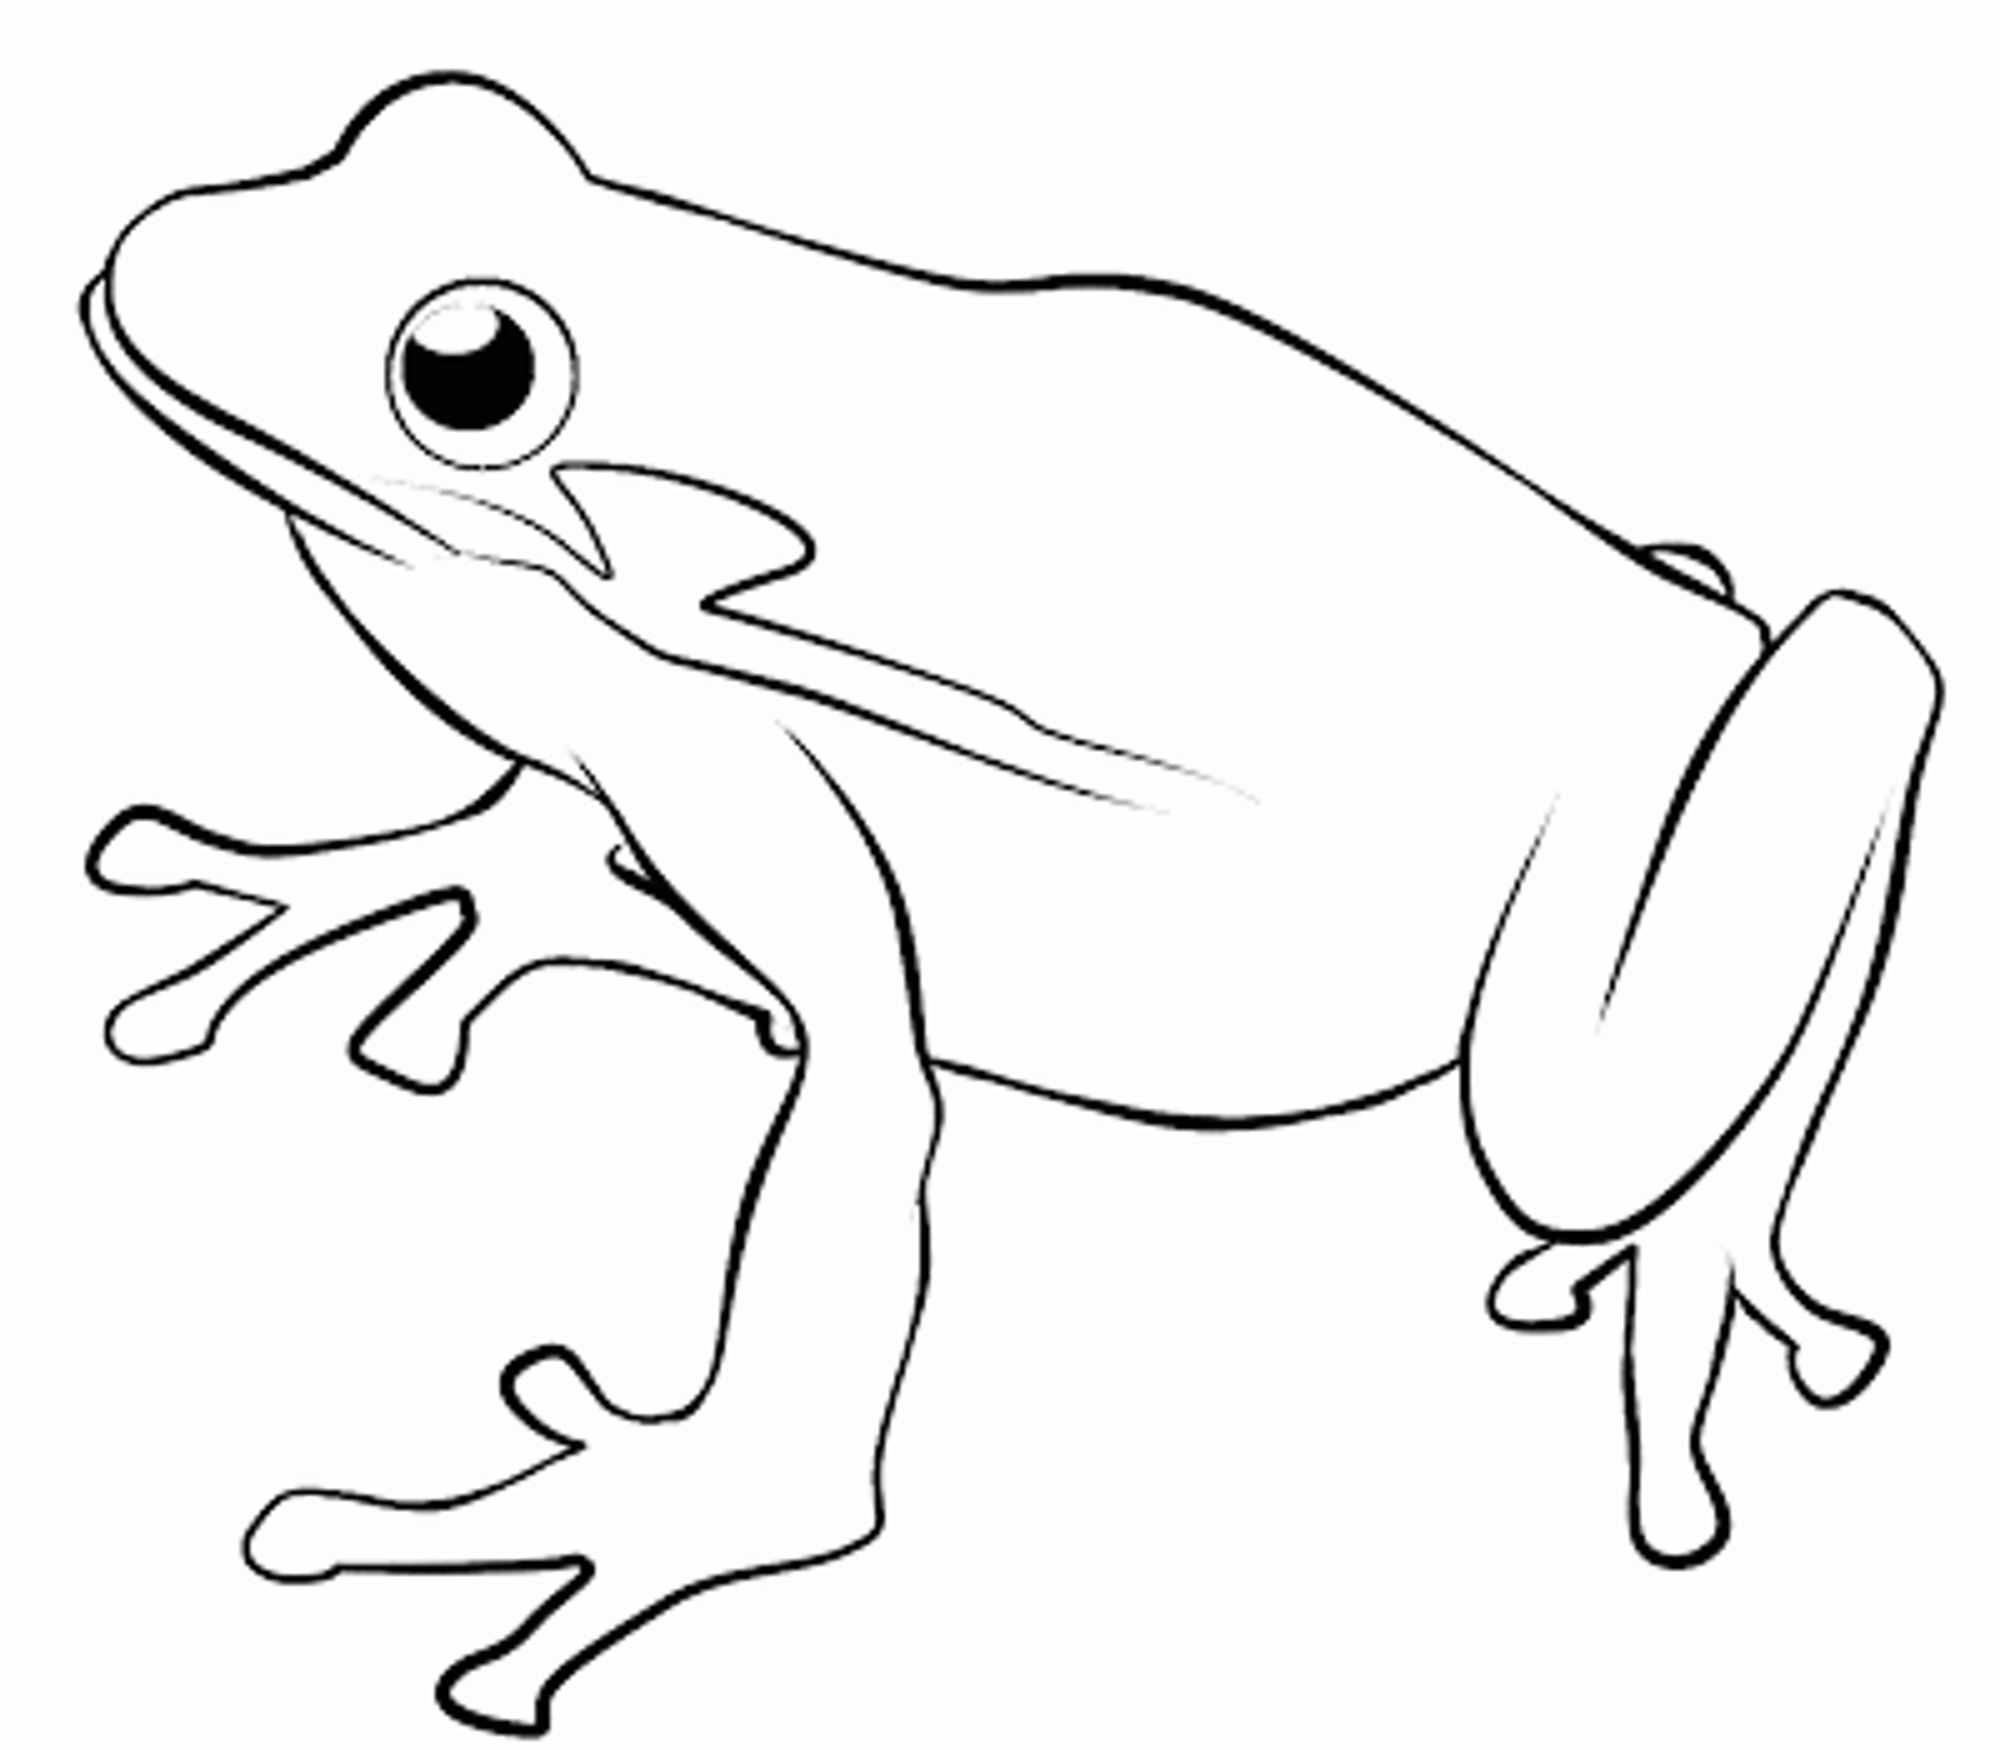 frog to color cute frog coloring pages coloring home to frog color